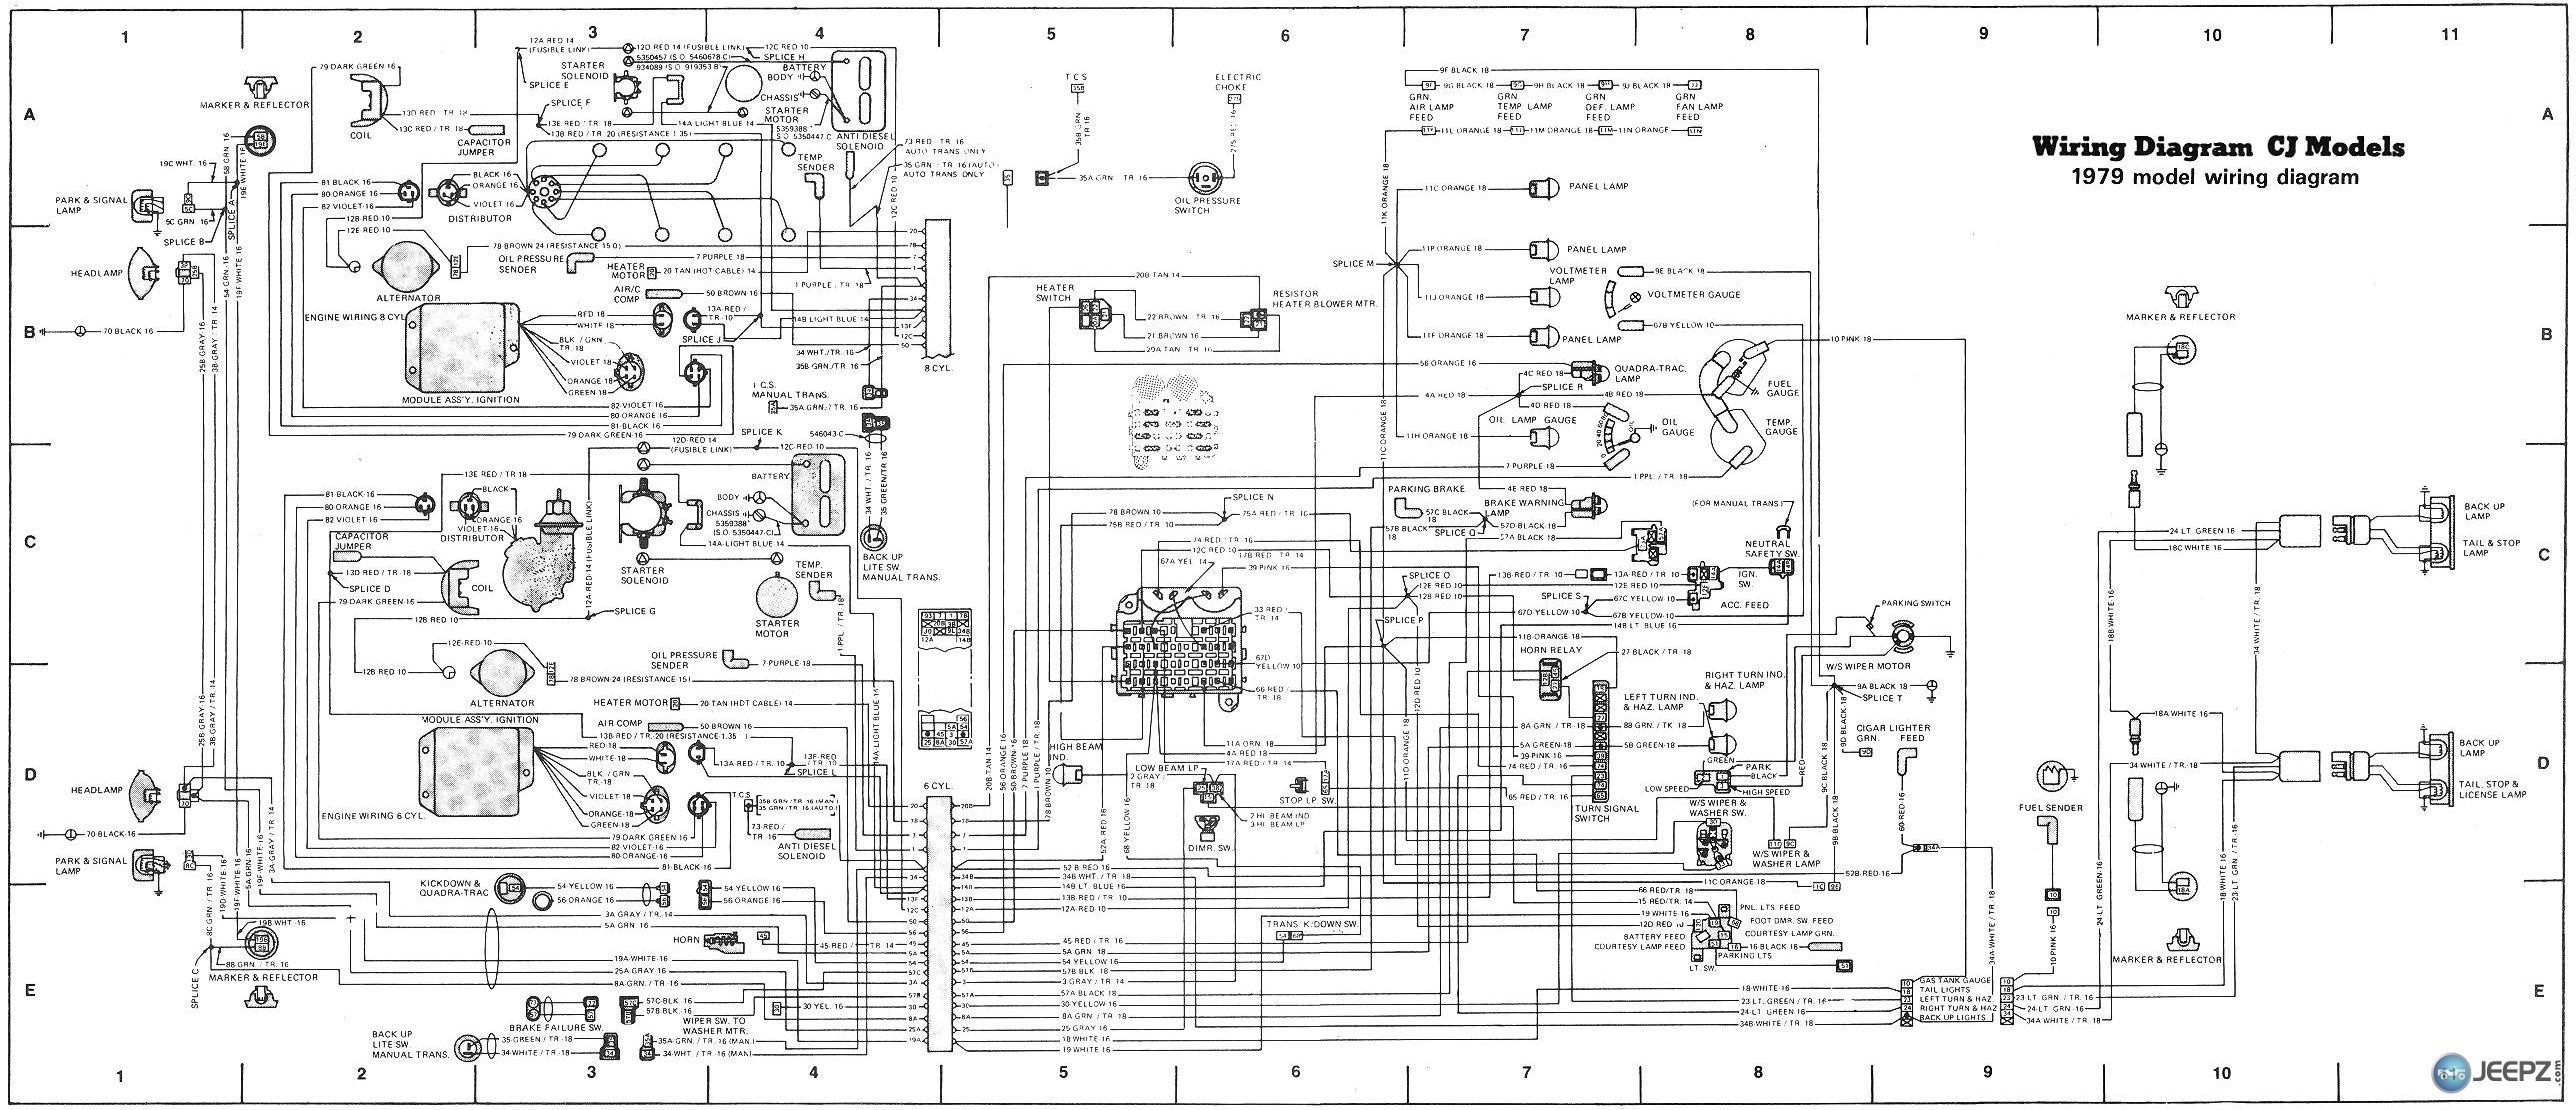 wiring diagram 2003 wrangler gd 8569  2002 jeep liberty light wiring diagram free diagram  jeep liberty light wiring diagram